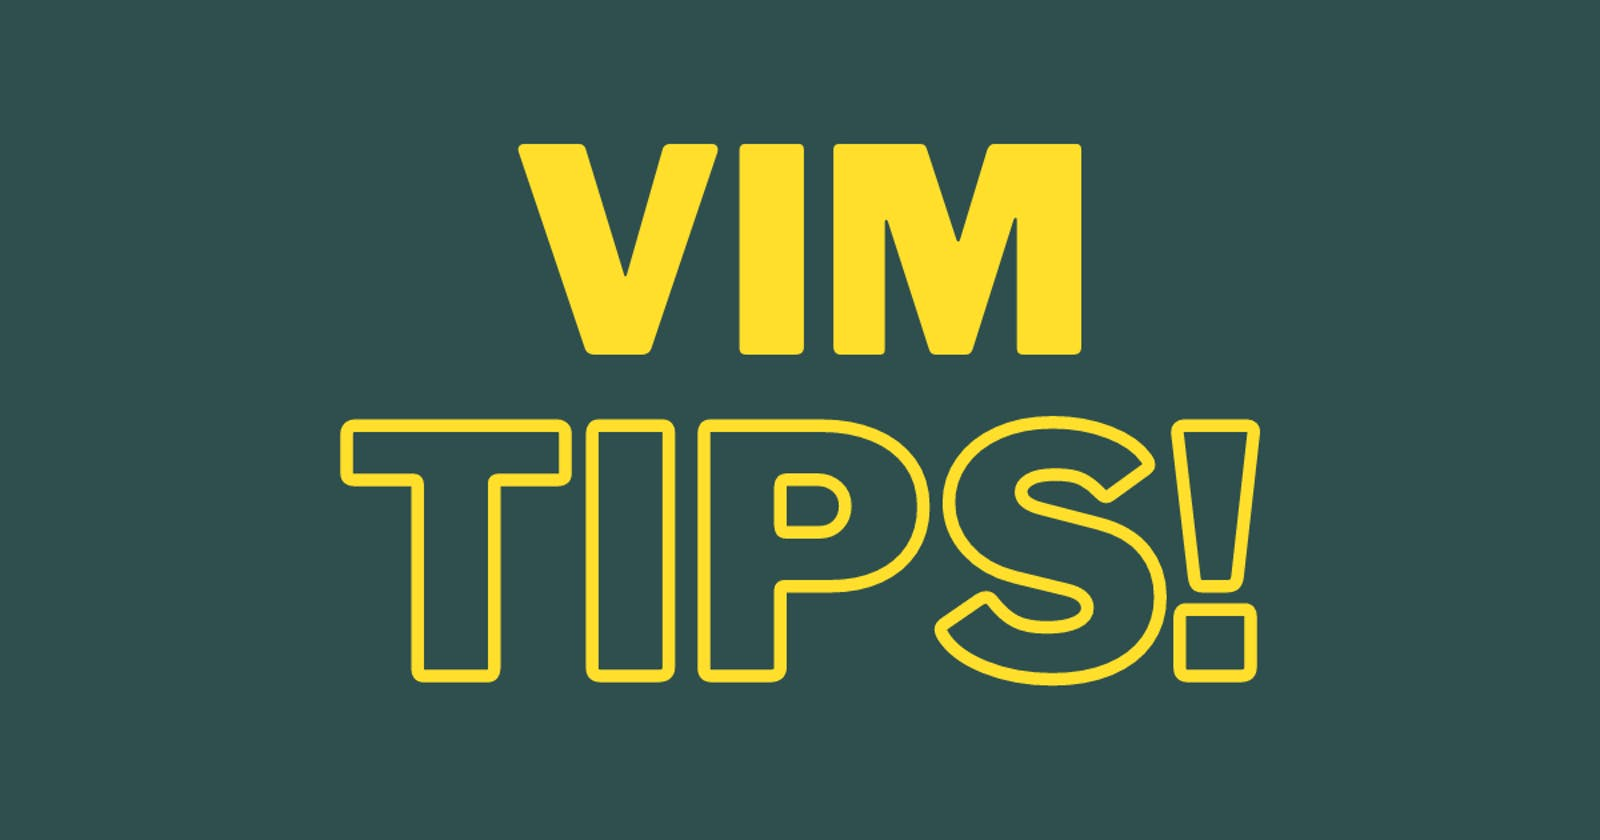 How to Put Into Vim From System Clipboard